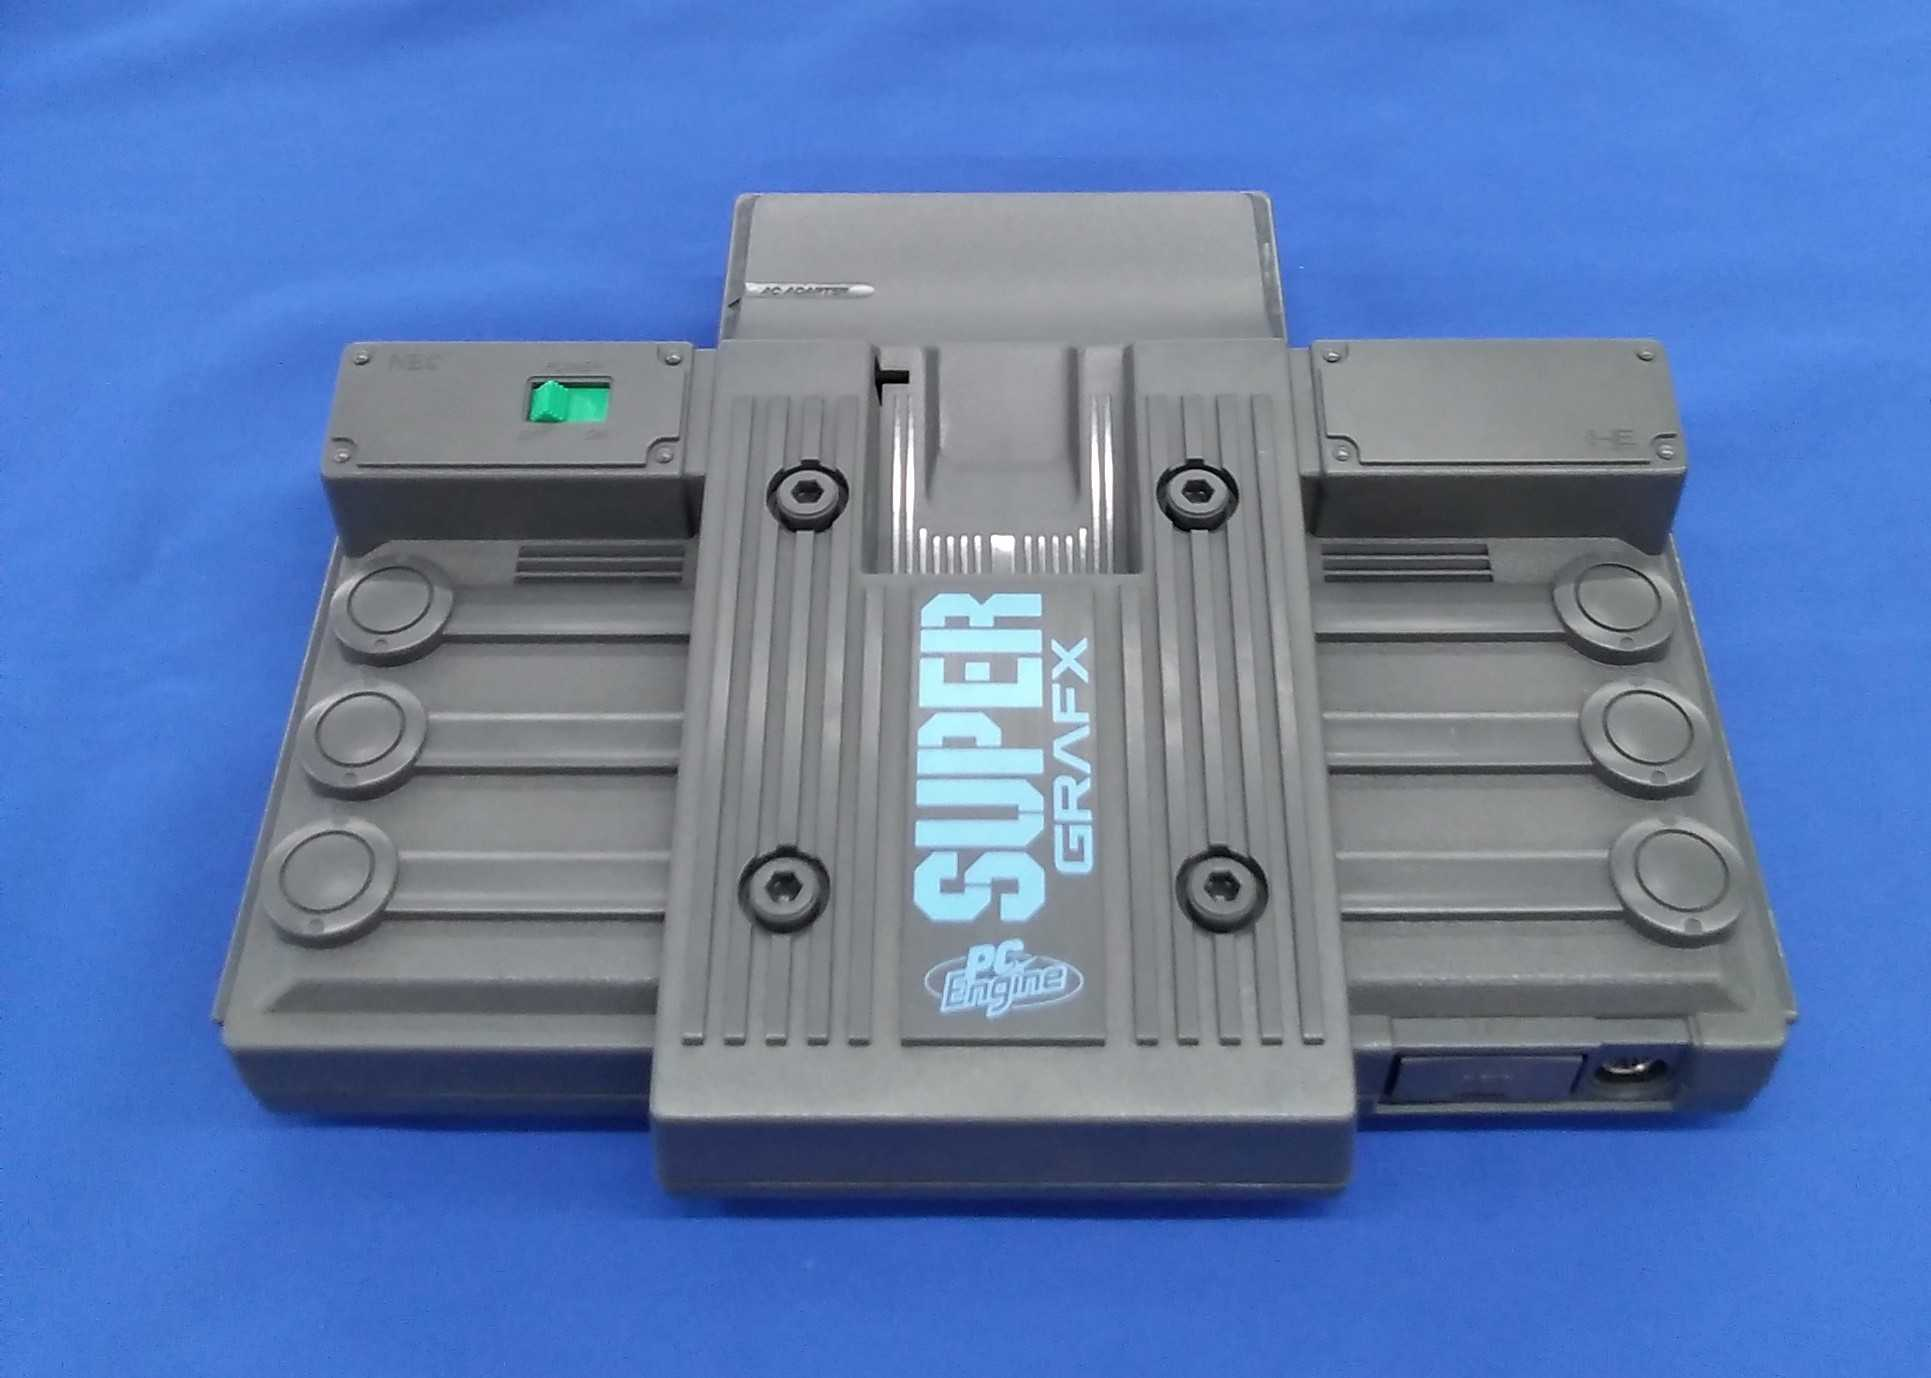 PC ENGINE SUPER GRATX|NEC